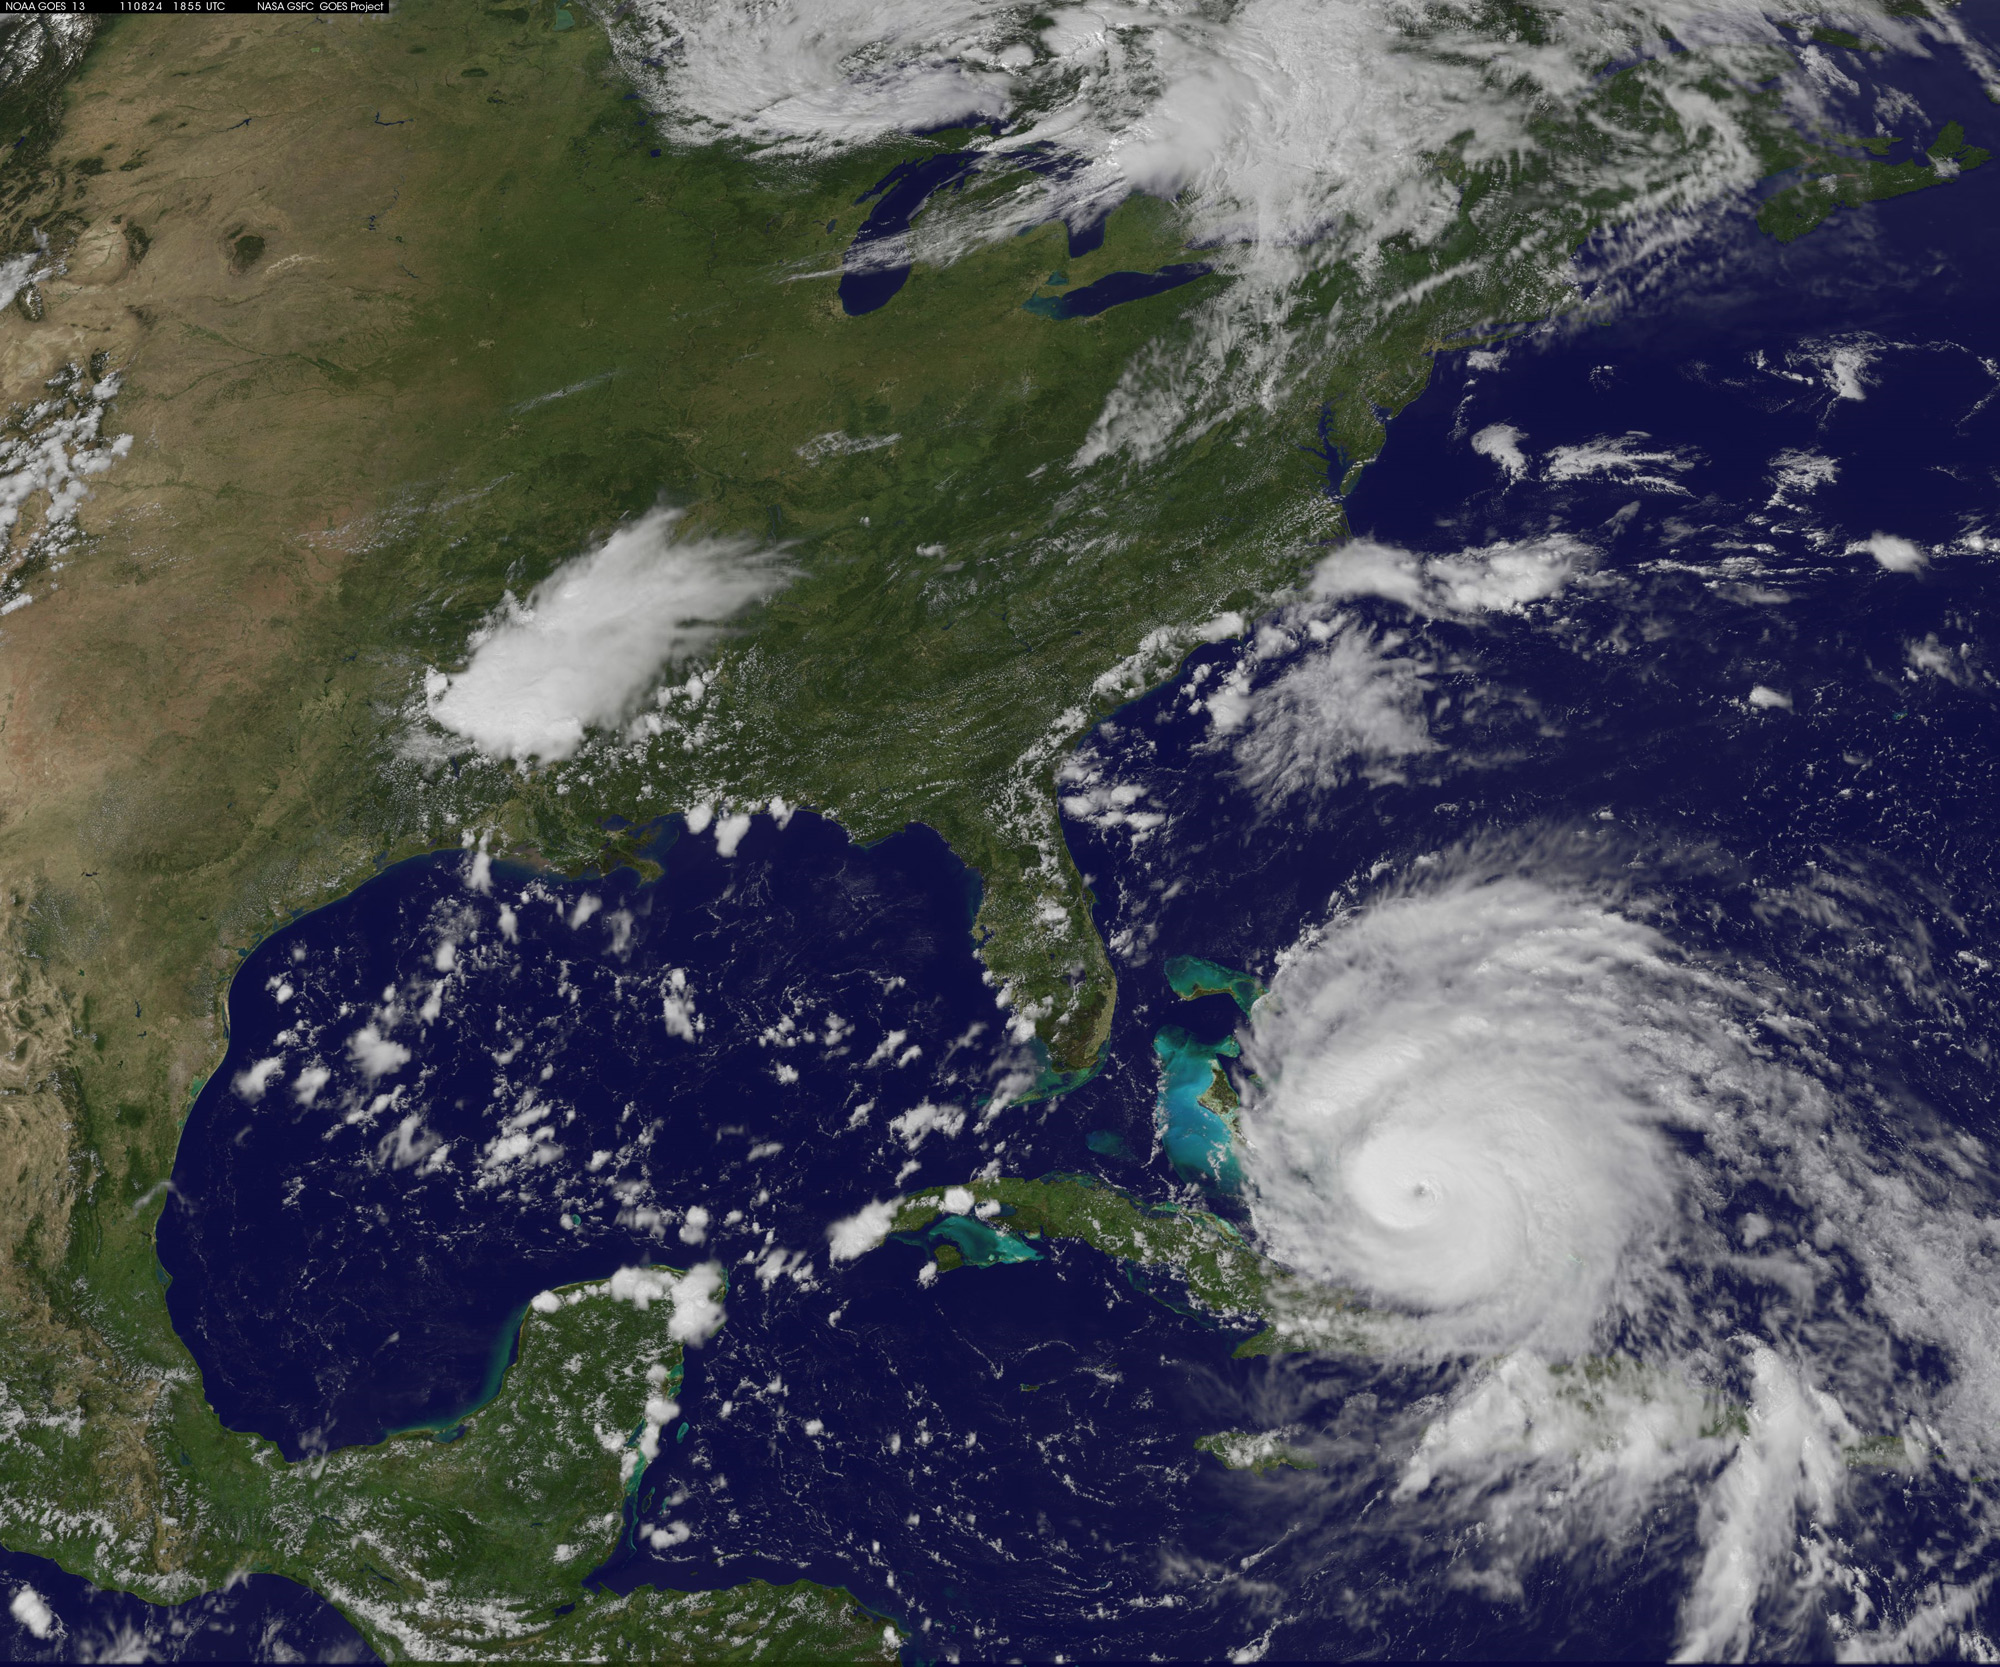 Hurricane Irene as Seen by the GOES Satellite on August 24, 2011.